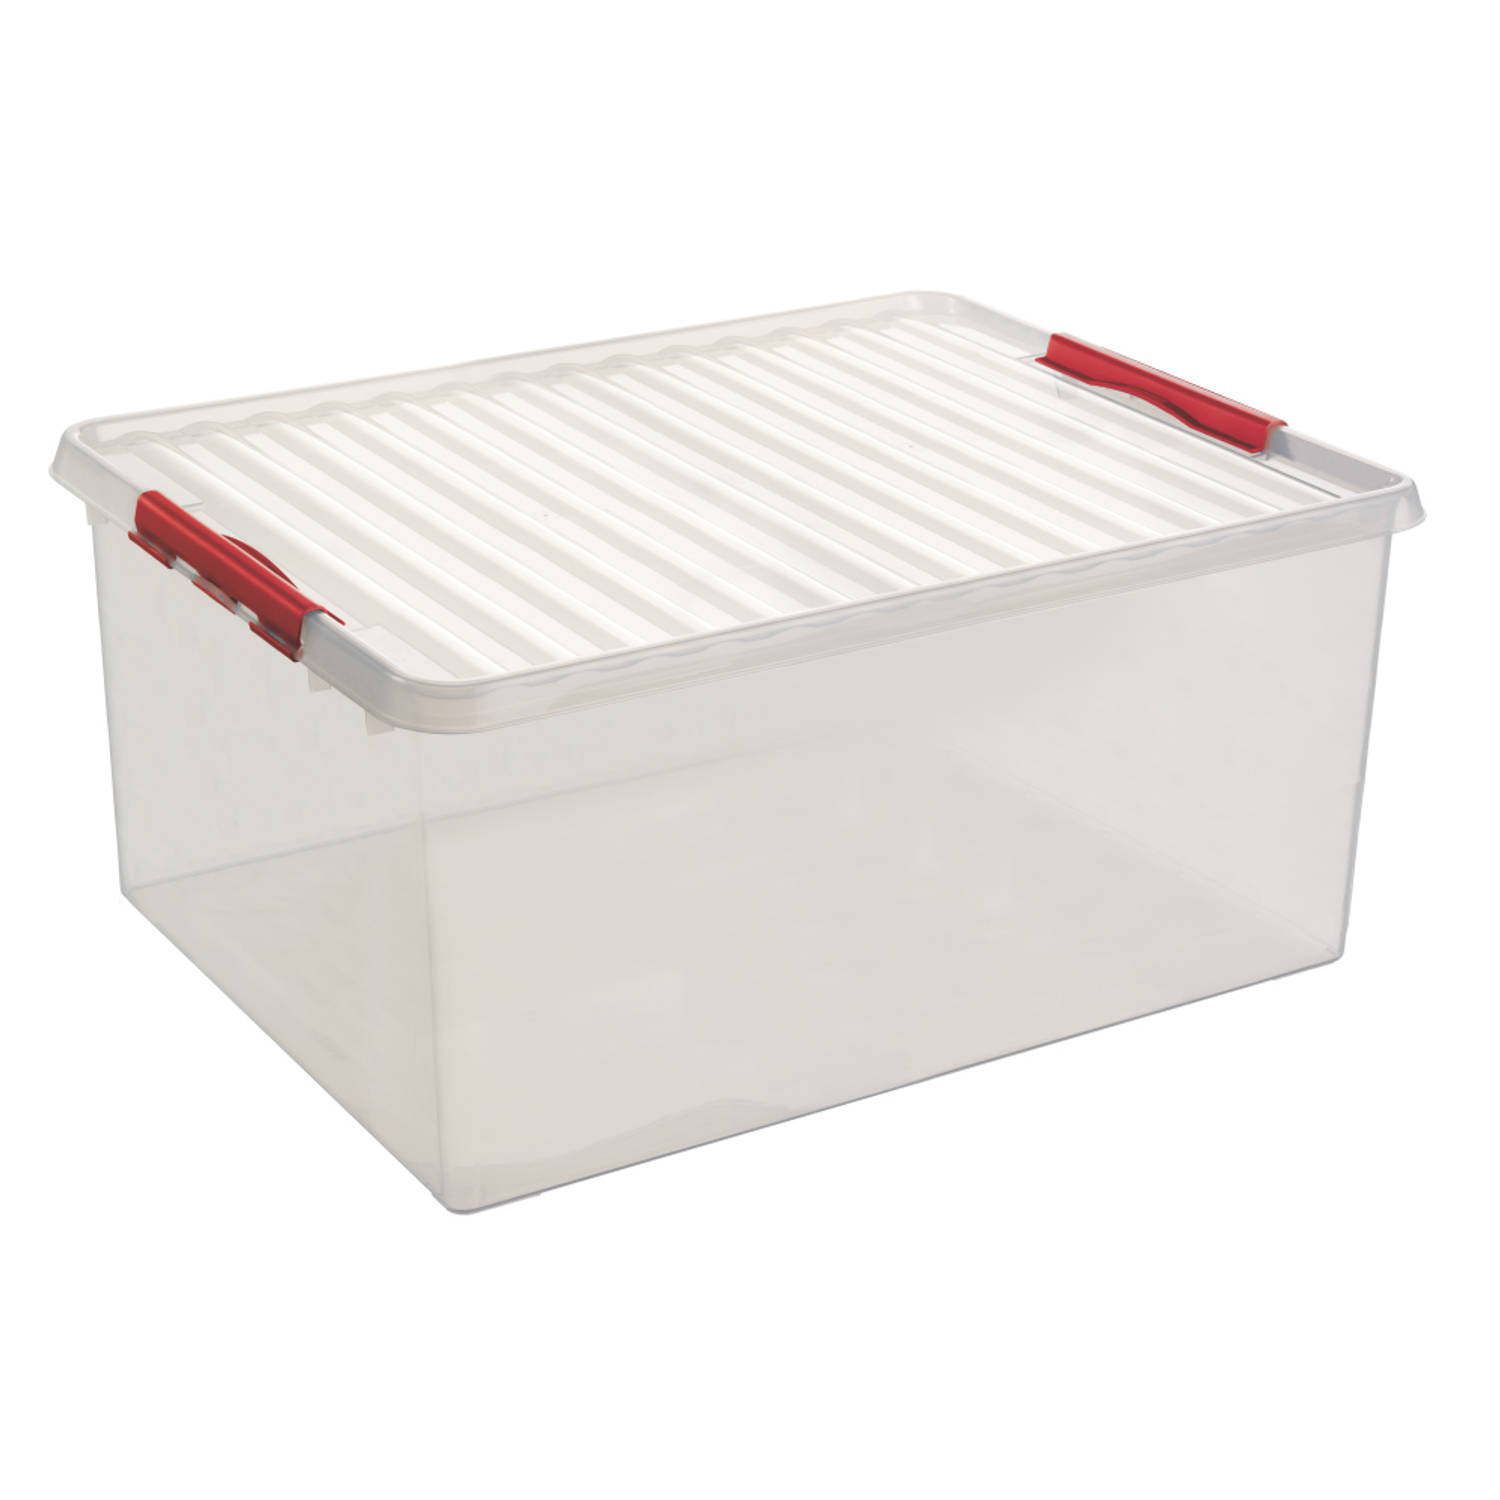 Q-line Opbergbox - Extra groot - 120L - transp/rood